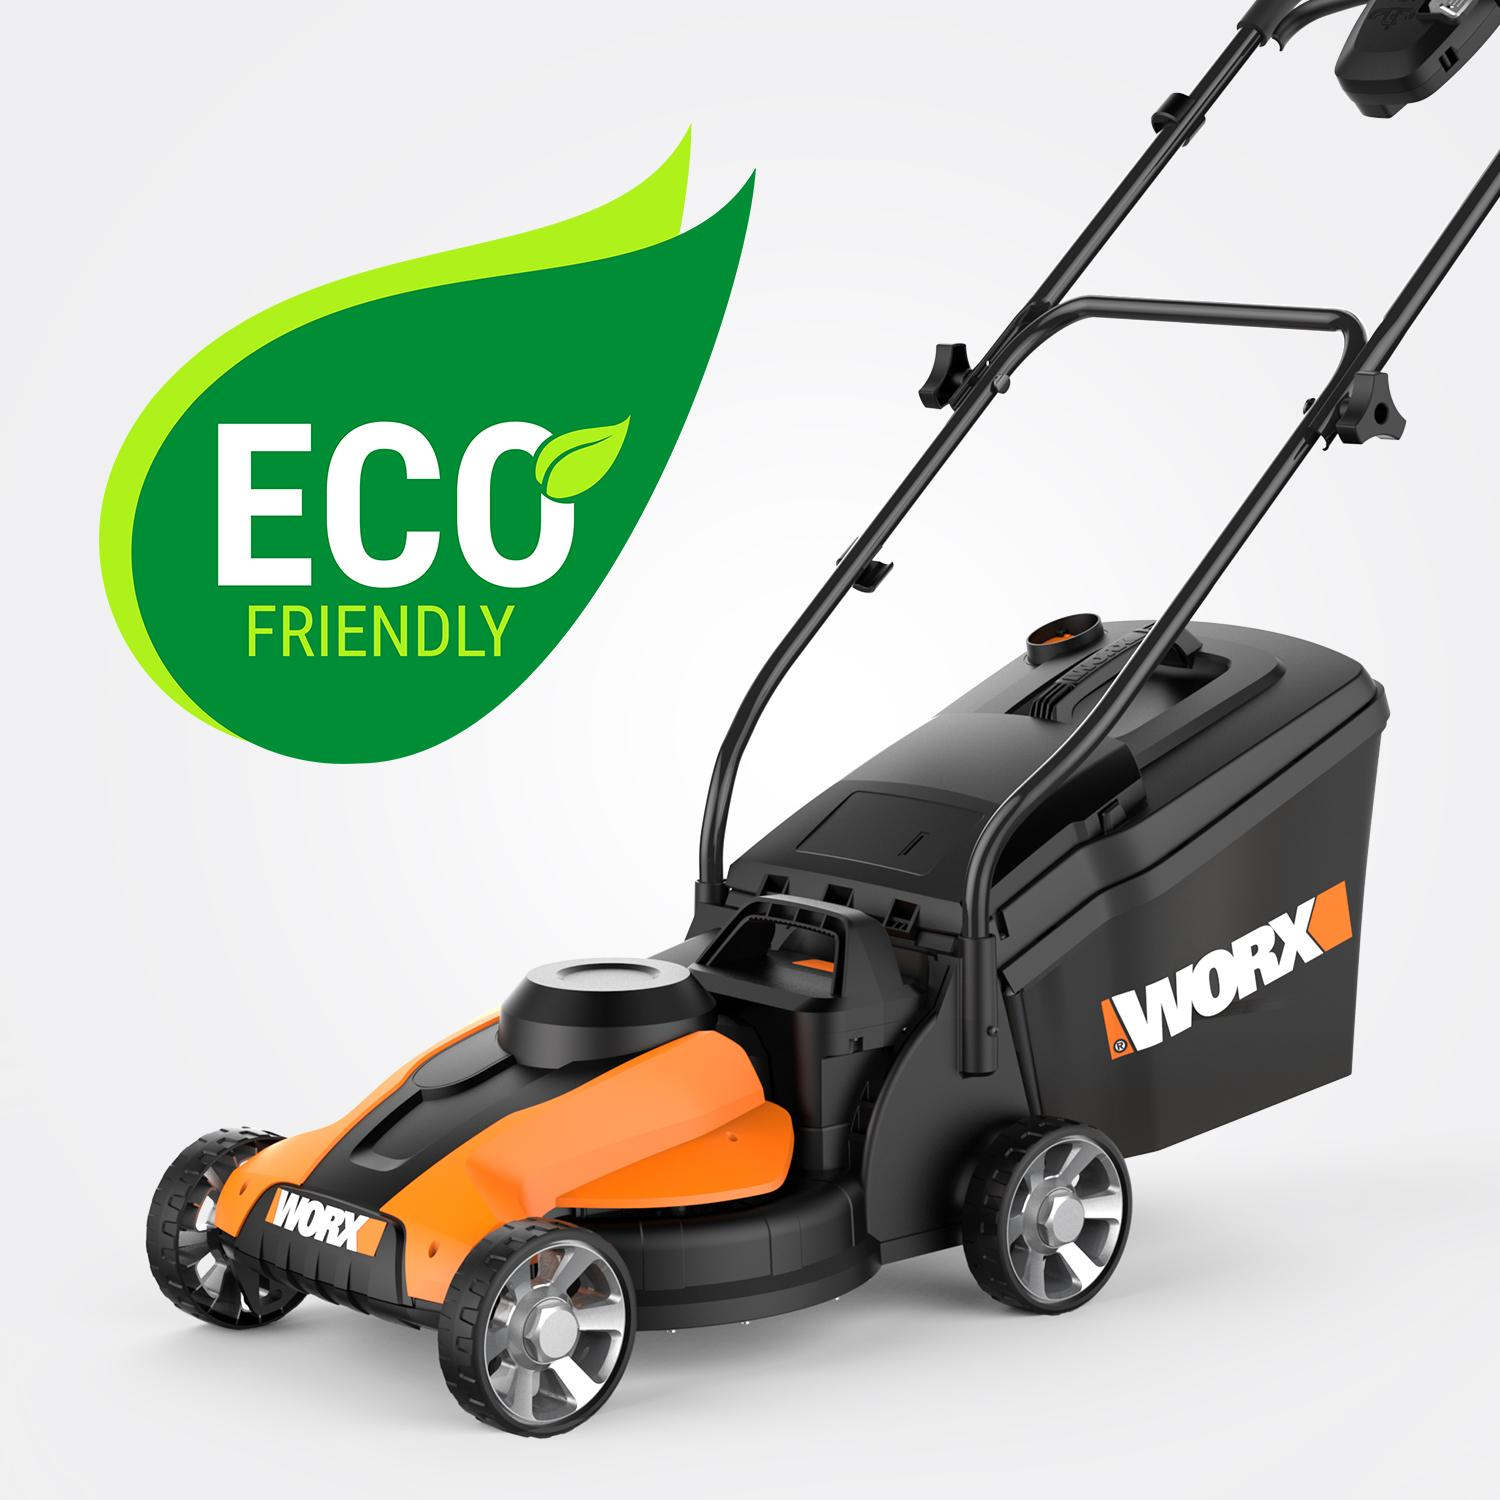 worx 14 inch 24 volt cordless lawn mower with. Black Bedroom Furniture Sets. Home Design Ideas